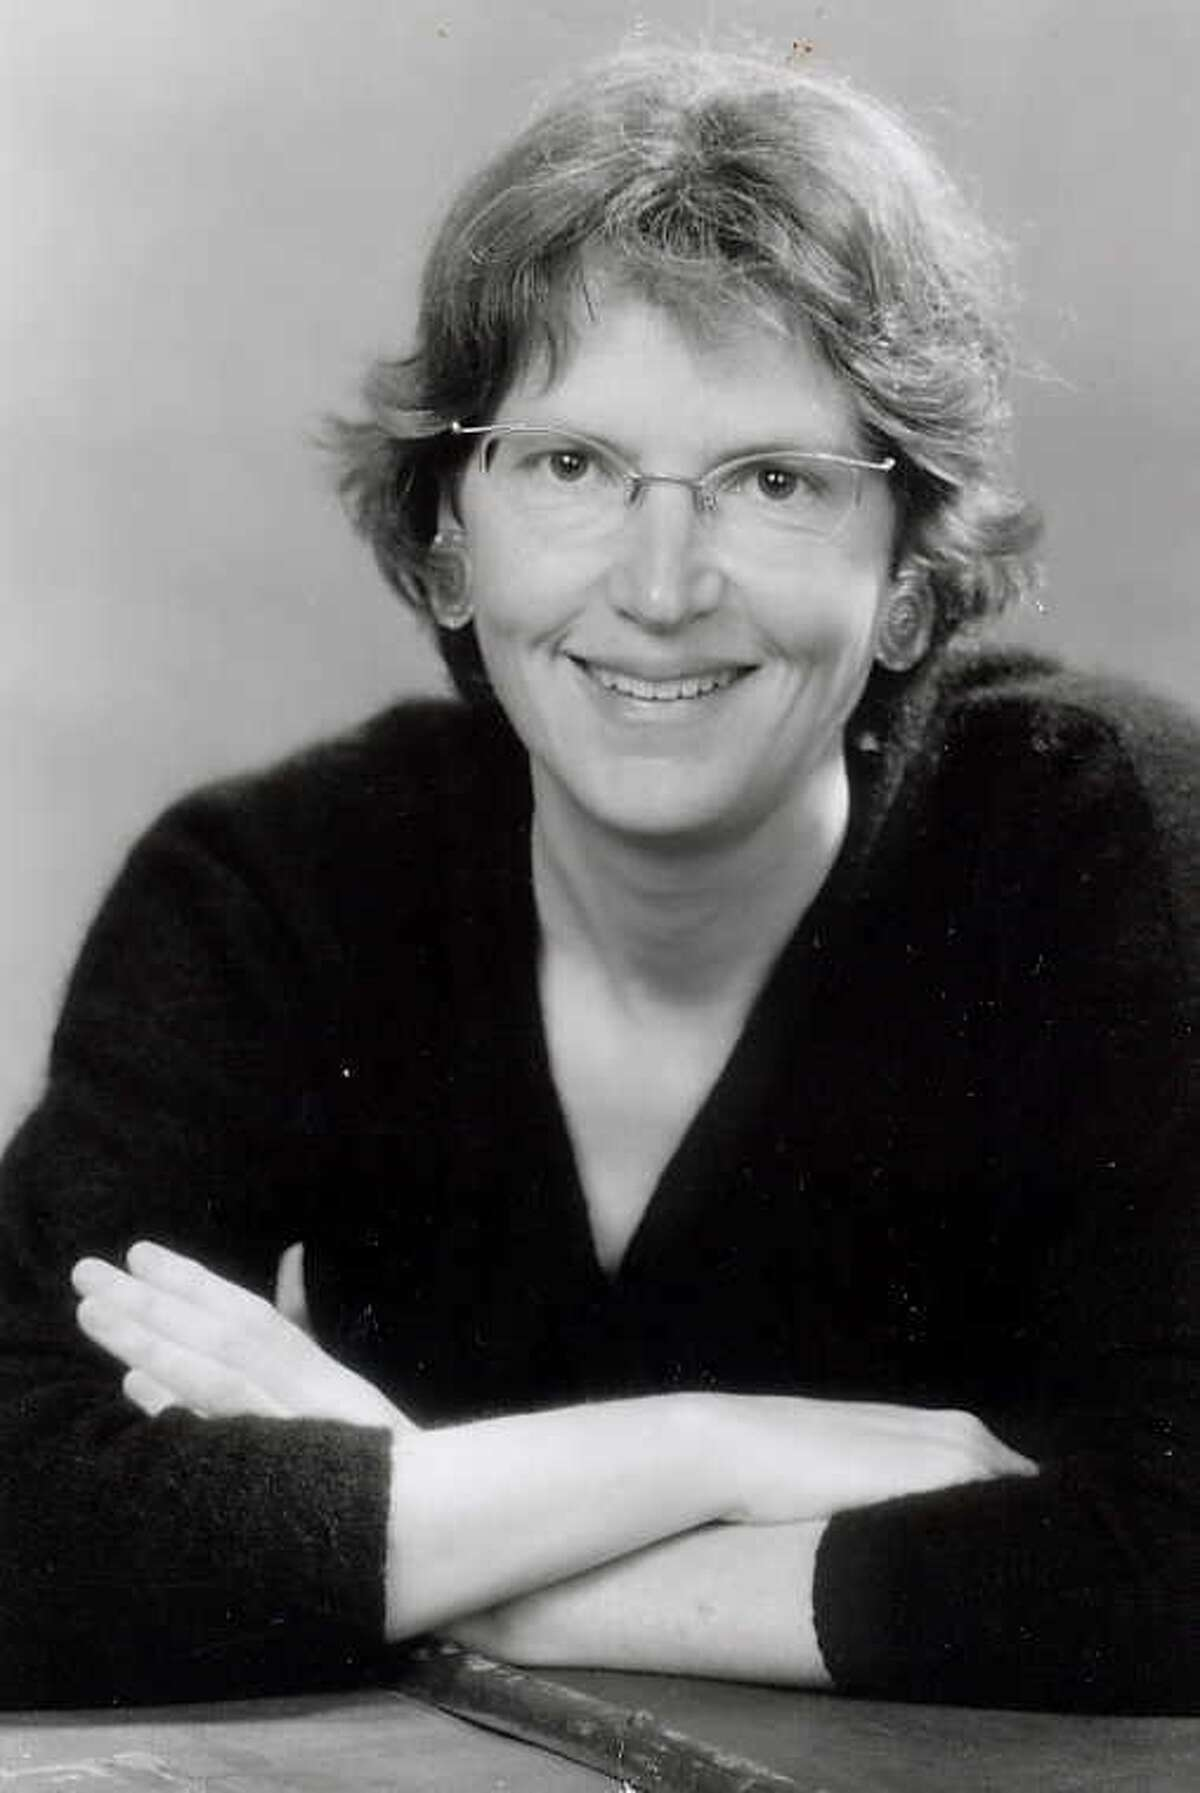 Music from Salem Co-artistic director, violist Lila Brown. (Courtesy the artist)